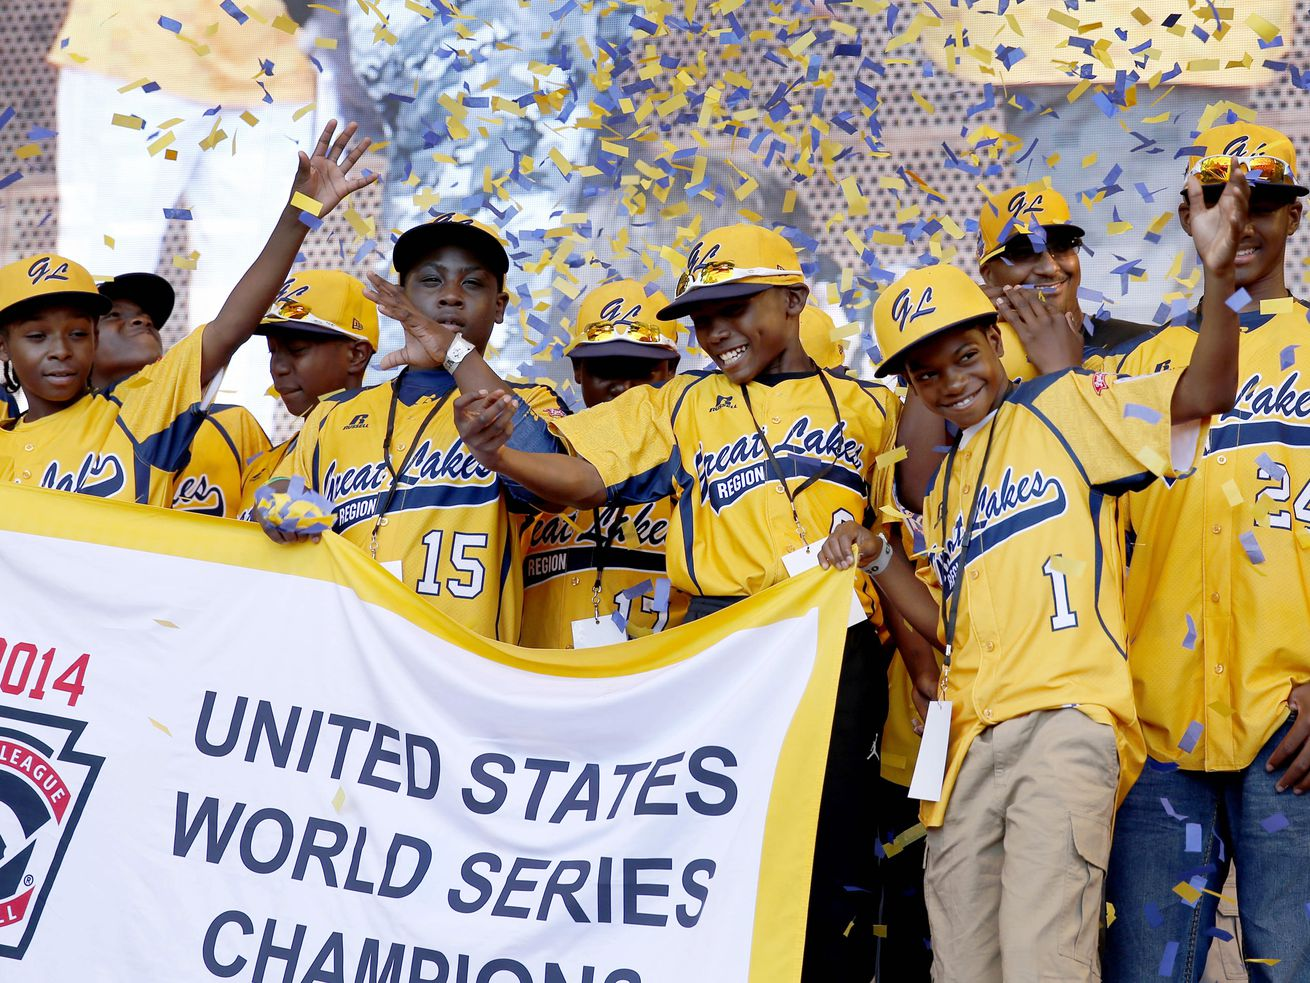 Members of the Jackie Robinson West All Stars Little League baseball team are shown at an August 2014 rally celebrating the team's U.S. Little League Championship. Little League International later stripped the team of that title after an investigation th